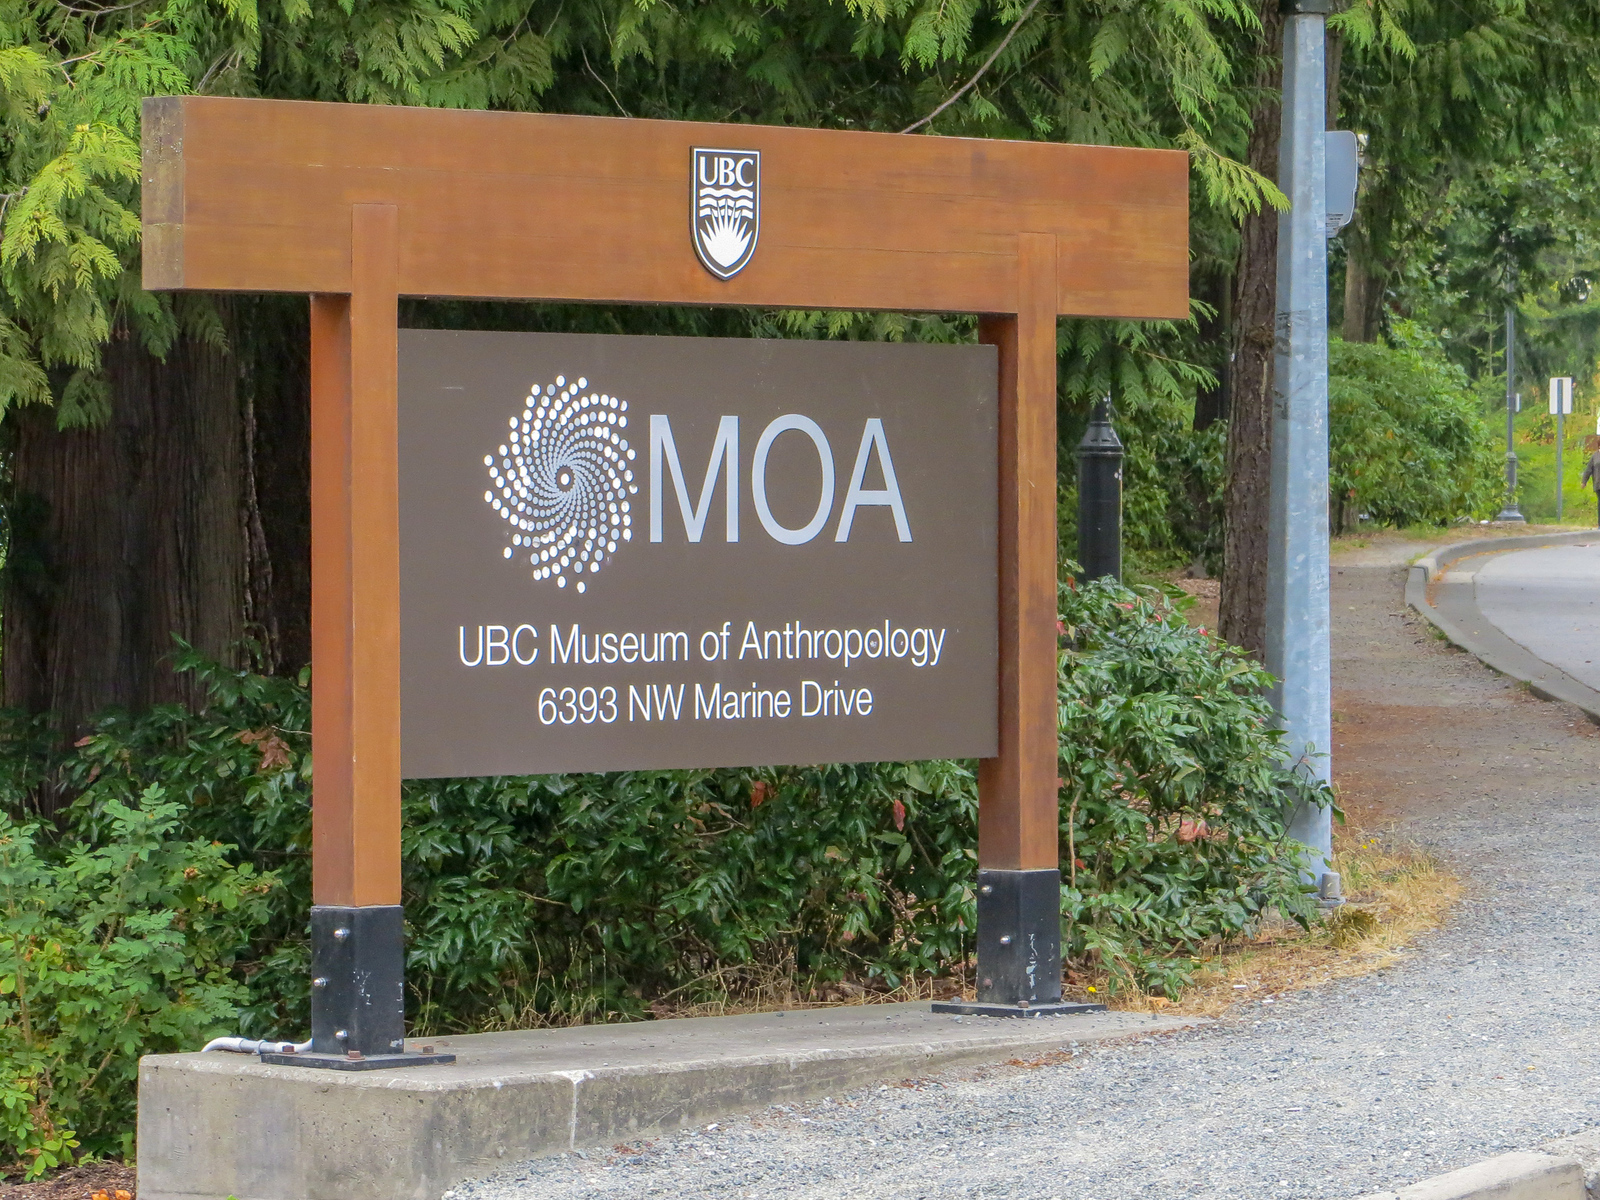 ubc is a great choice for a weekend in vancouver